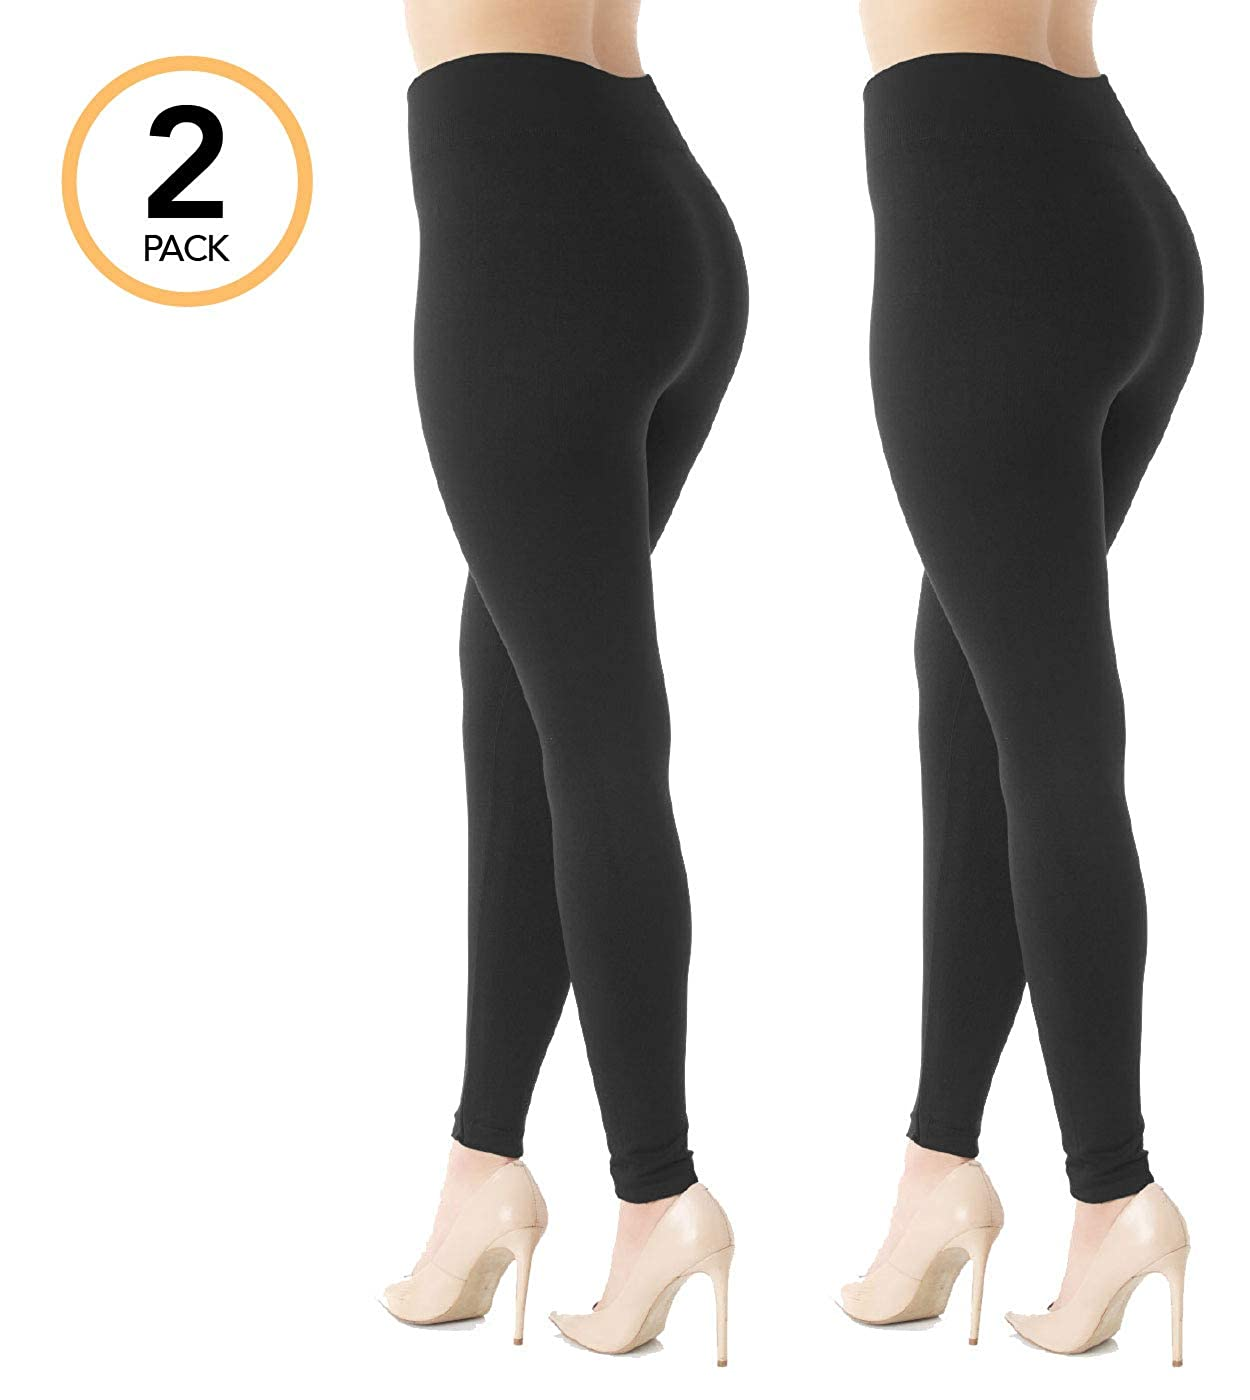 a439fff288b Premium Women s Fleece Lined Leggings - High Waist - Regular and Plus Size  - 20+ Colors at Amazon Women s Clothing store